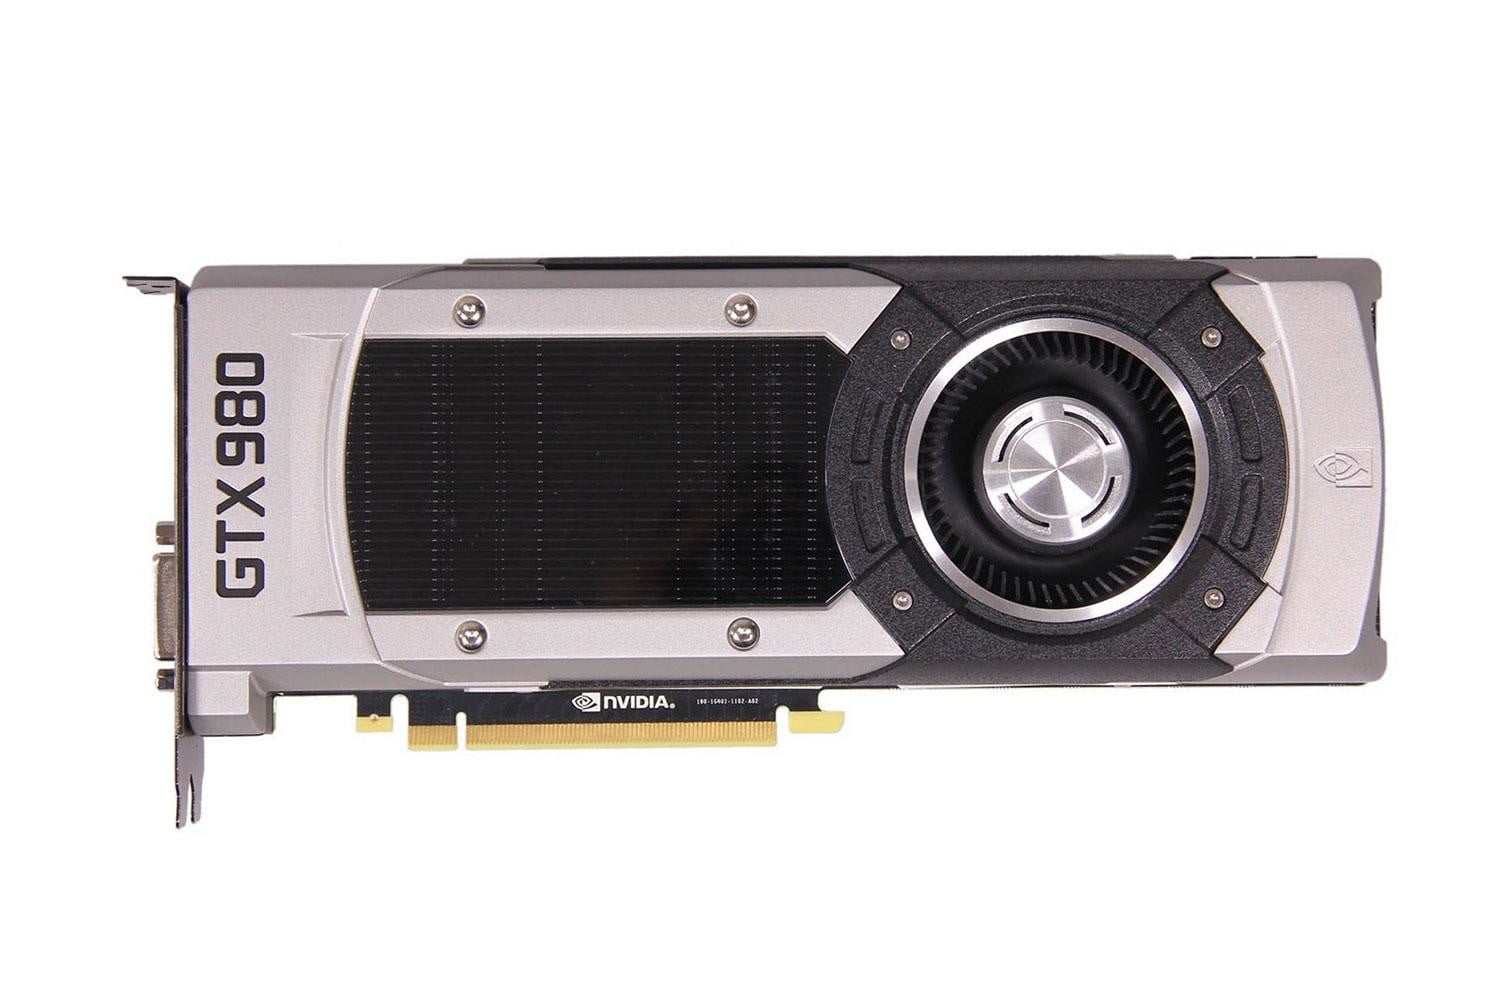 NVIDIA-GeForce-GTX-980-press-image